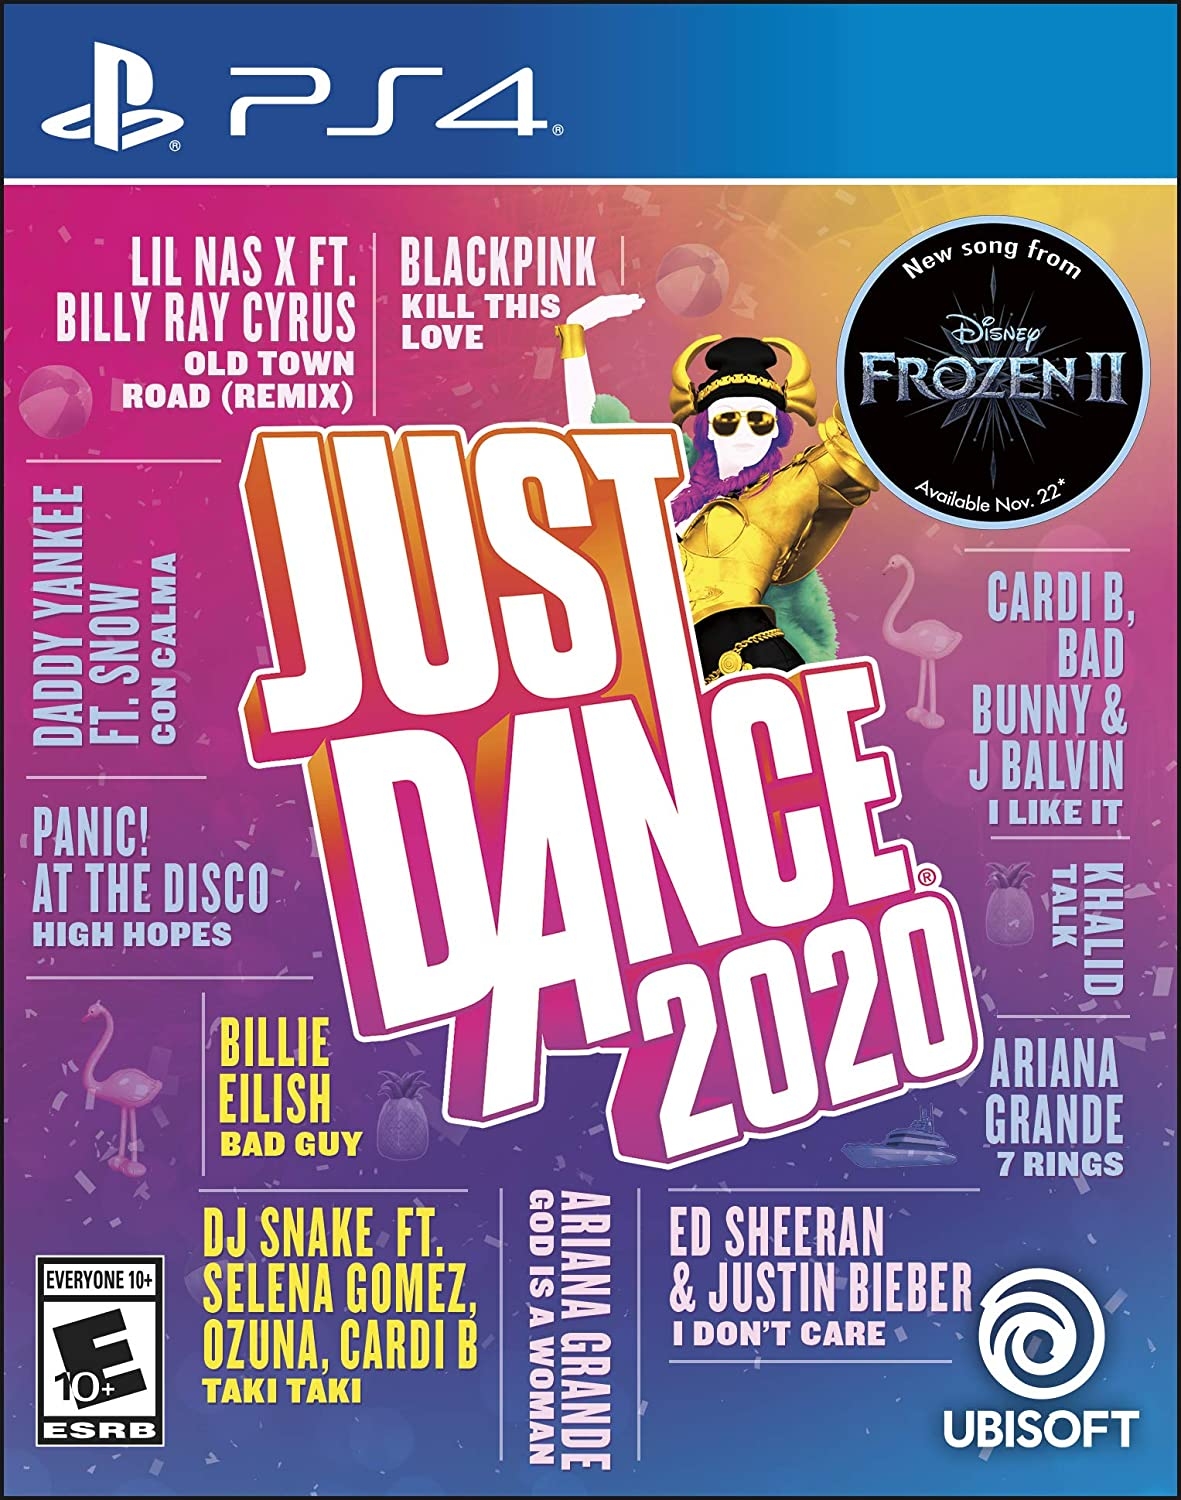 Psn Free Games May 2020.Amazon Com Just Dance 2020 Playstation 4 Standard Edition